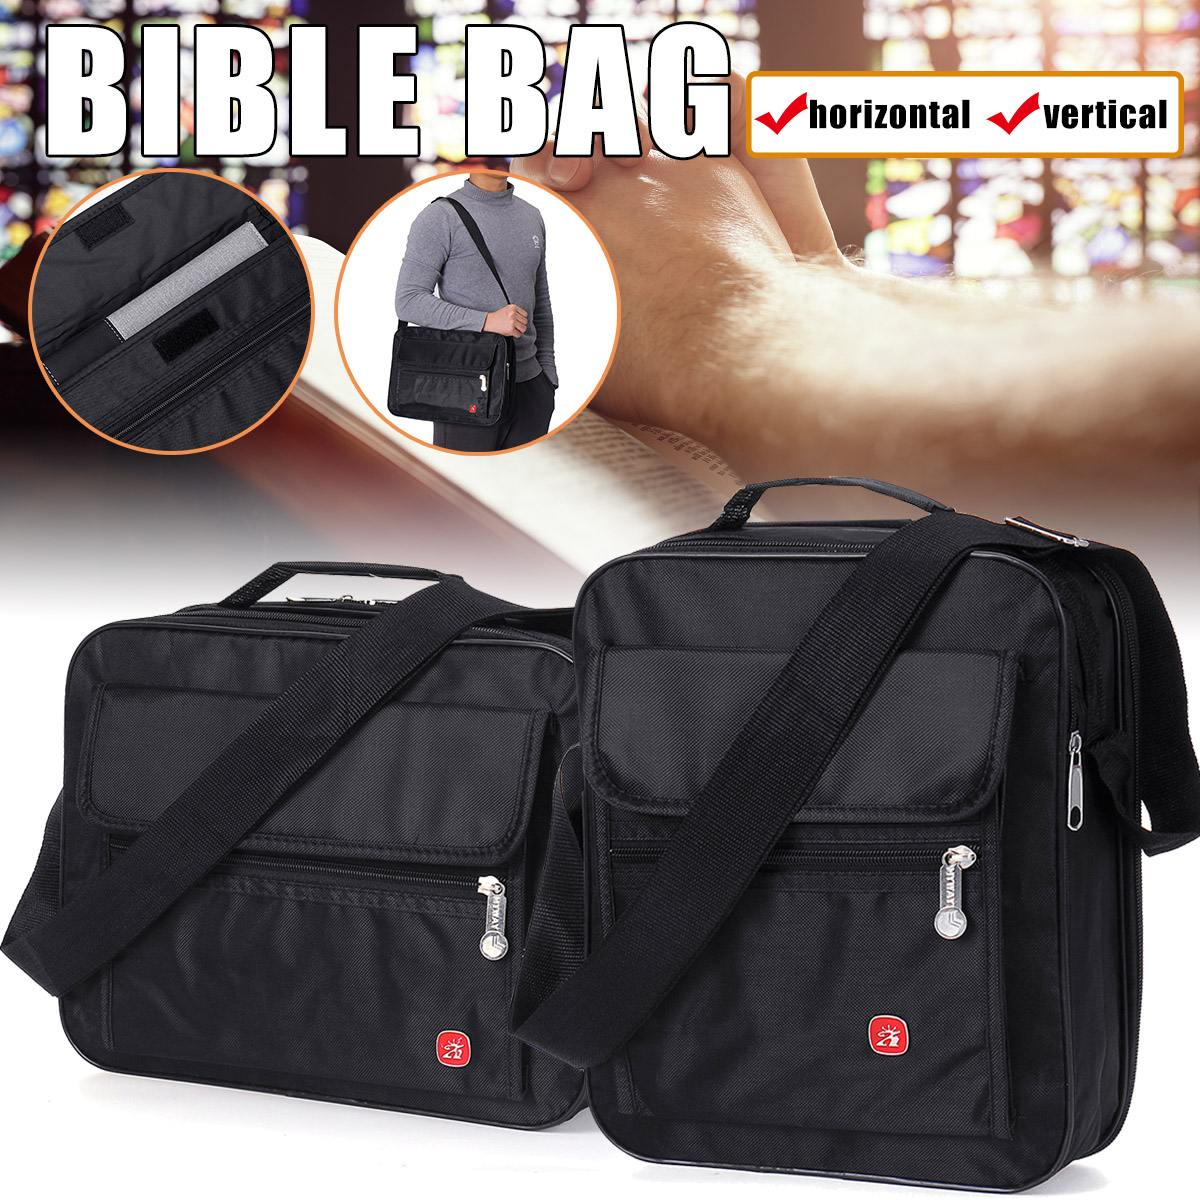 Bible Bag Perfect Quality Book Cover With Handle Zipper Closure Design Portable Carry Bag Bible Study Book Handbag